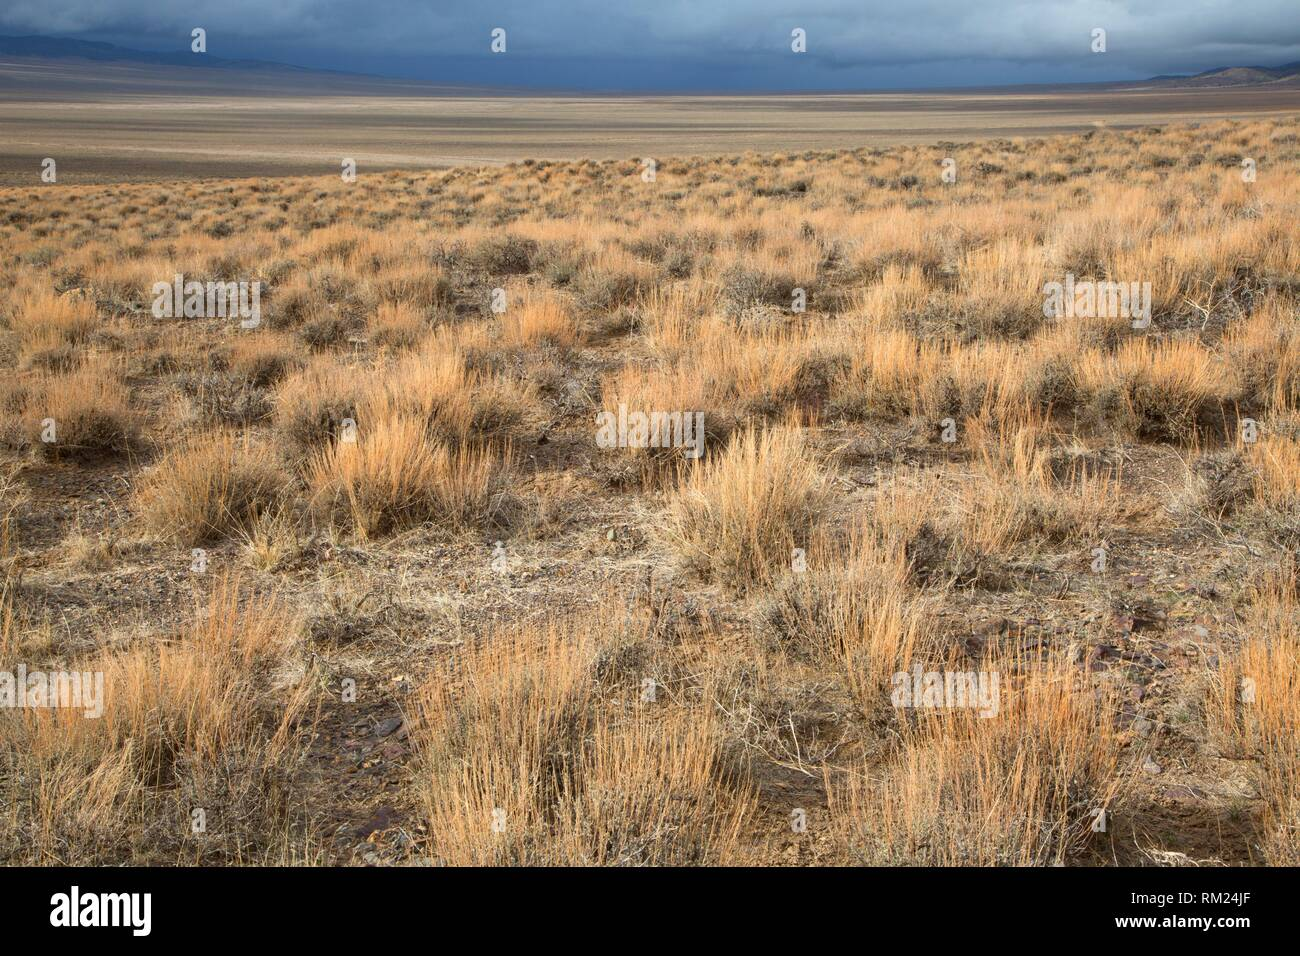 Ione Valley, Southern Nevada District Bureau of Land Management, Nevada. - Stock Image